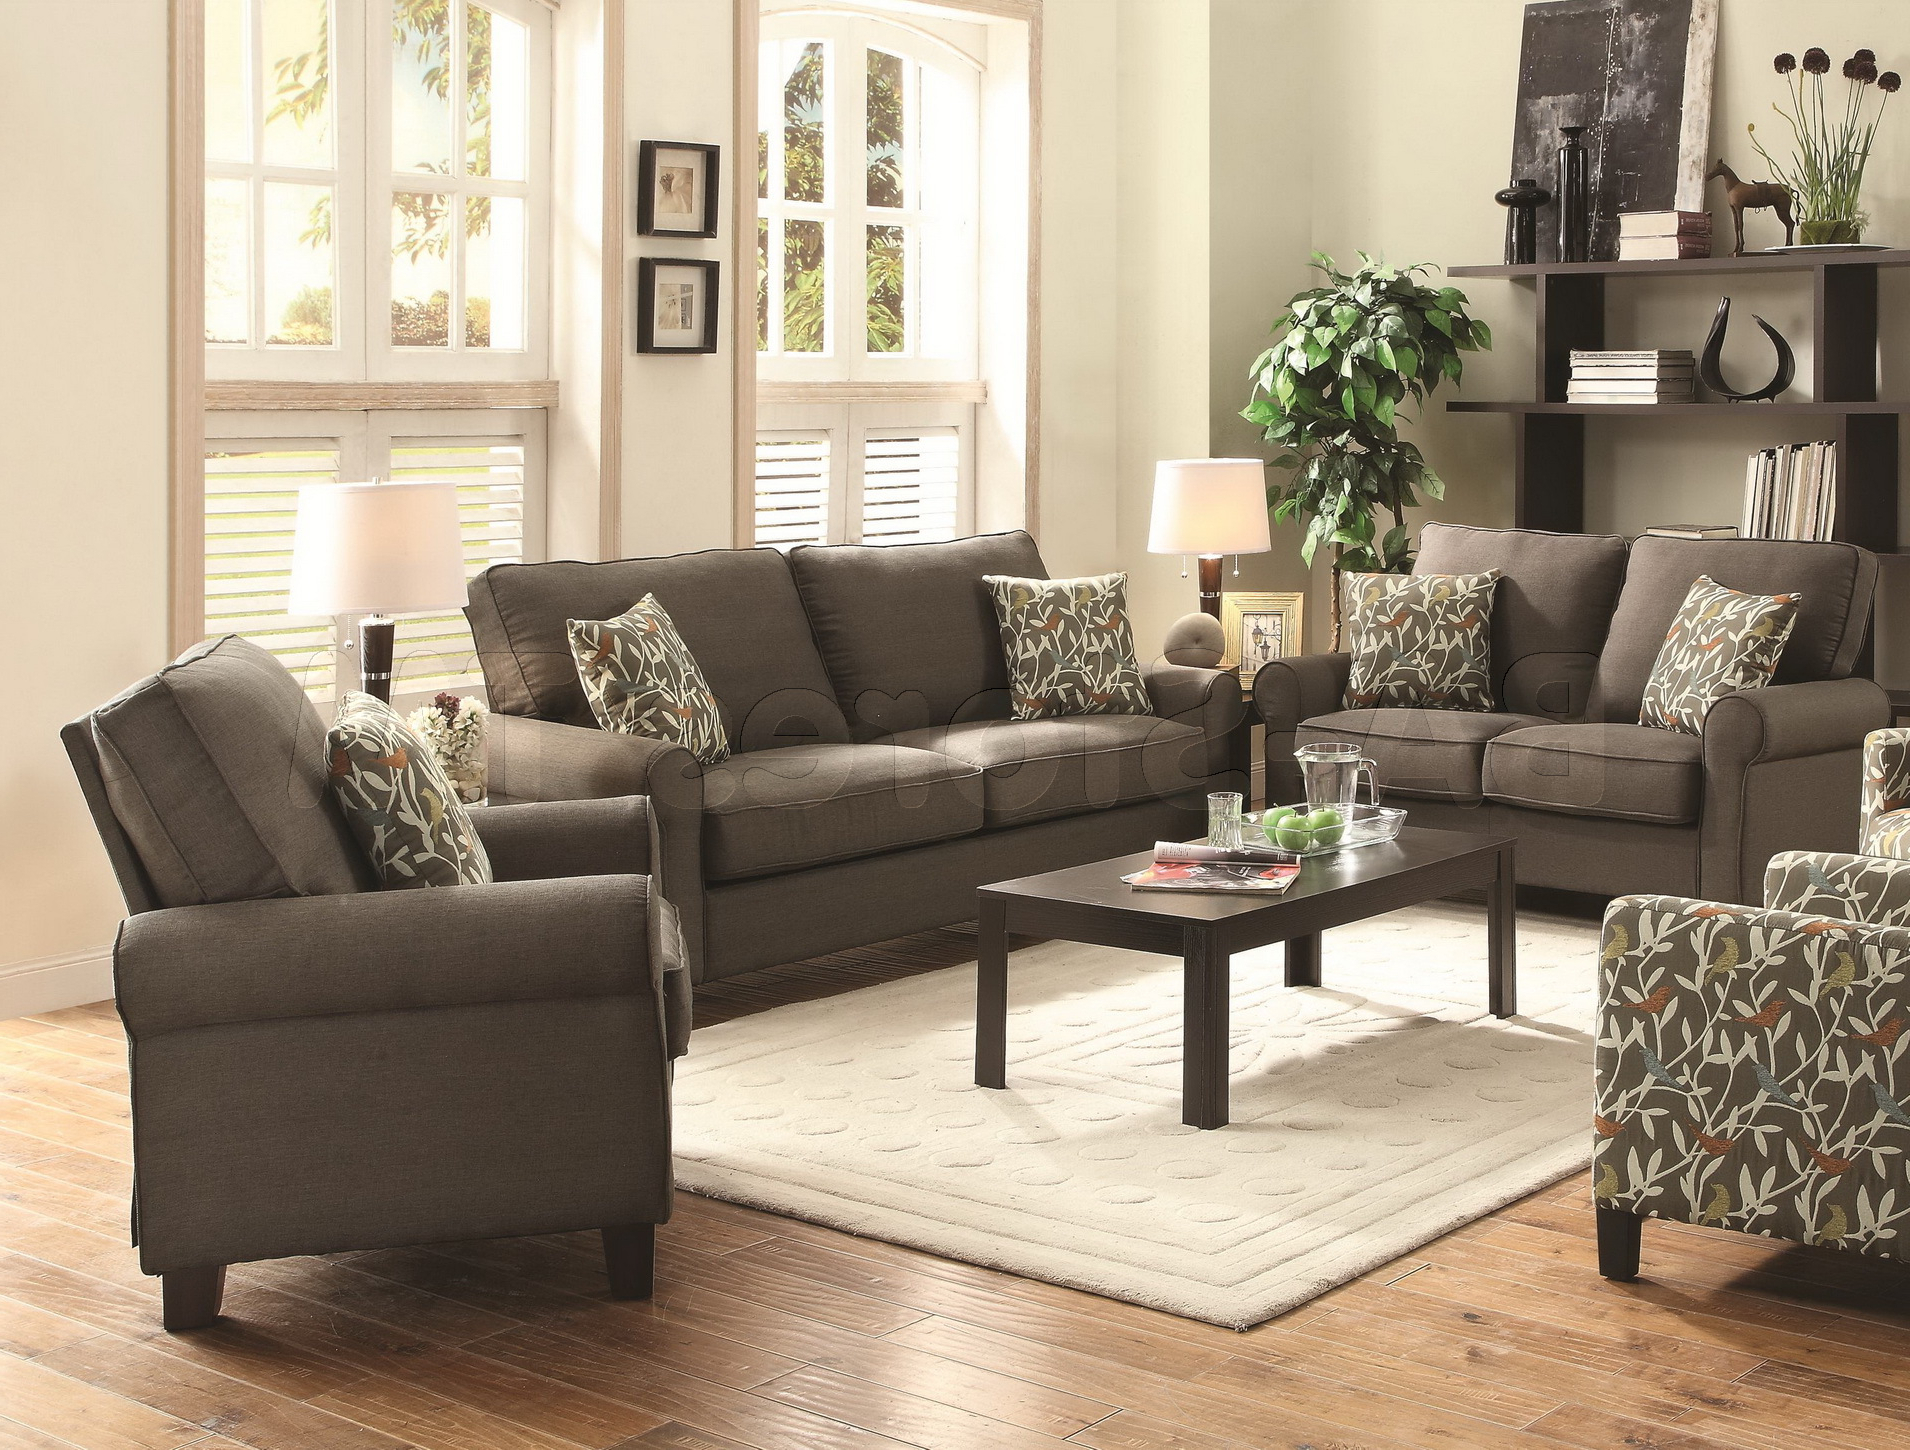 Well Known Sofa Loveseat And Chair Set In How To Find The Best Sofa Loveseat Set – Bellissimainteriors (View 16 of 20)